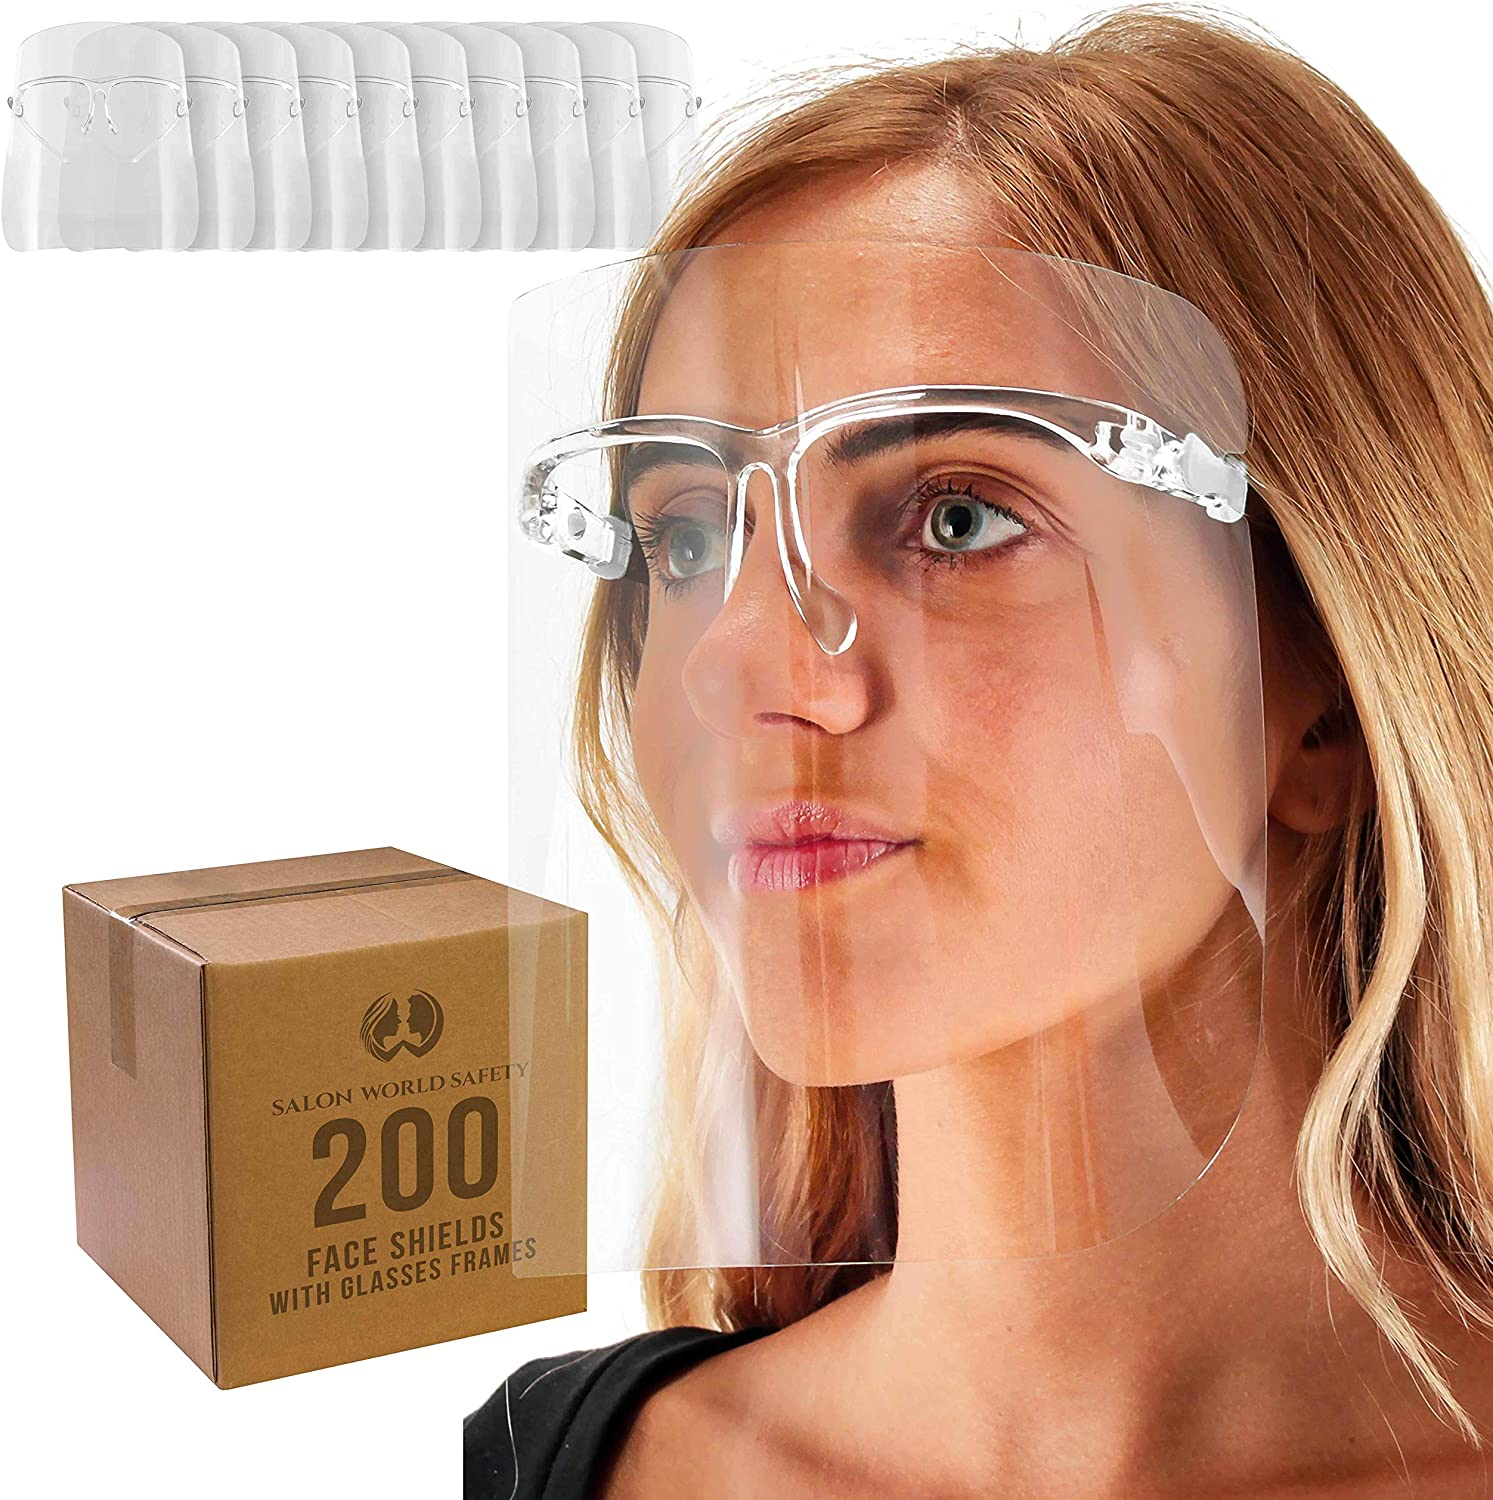 TCP Global Salon World Safety Face Shields with All Clear Glasses Frames (Case of 200) - Ultra Clear Protective Full Face Shields to Protect Eyes, Nose, Mouth - Anti-Fog PET Plastic, Goggles